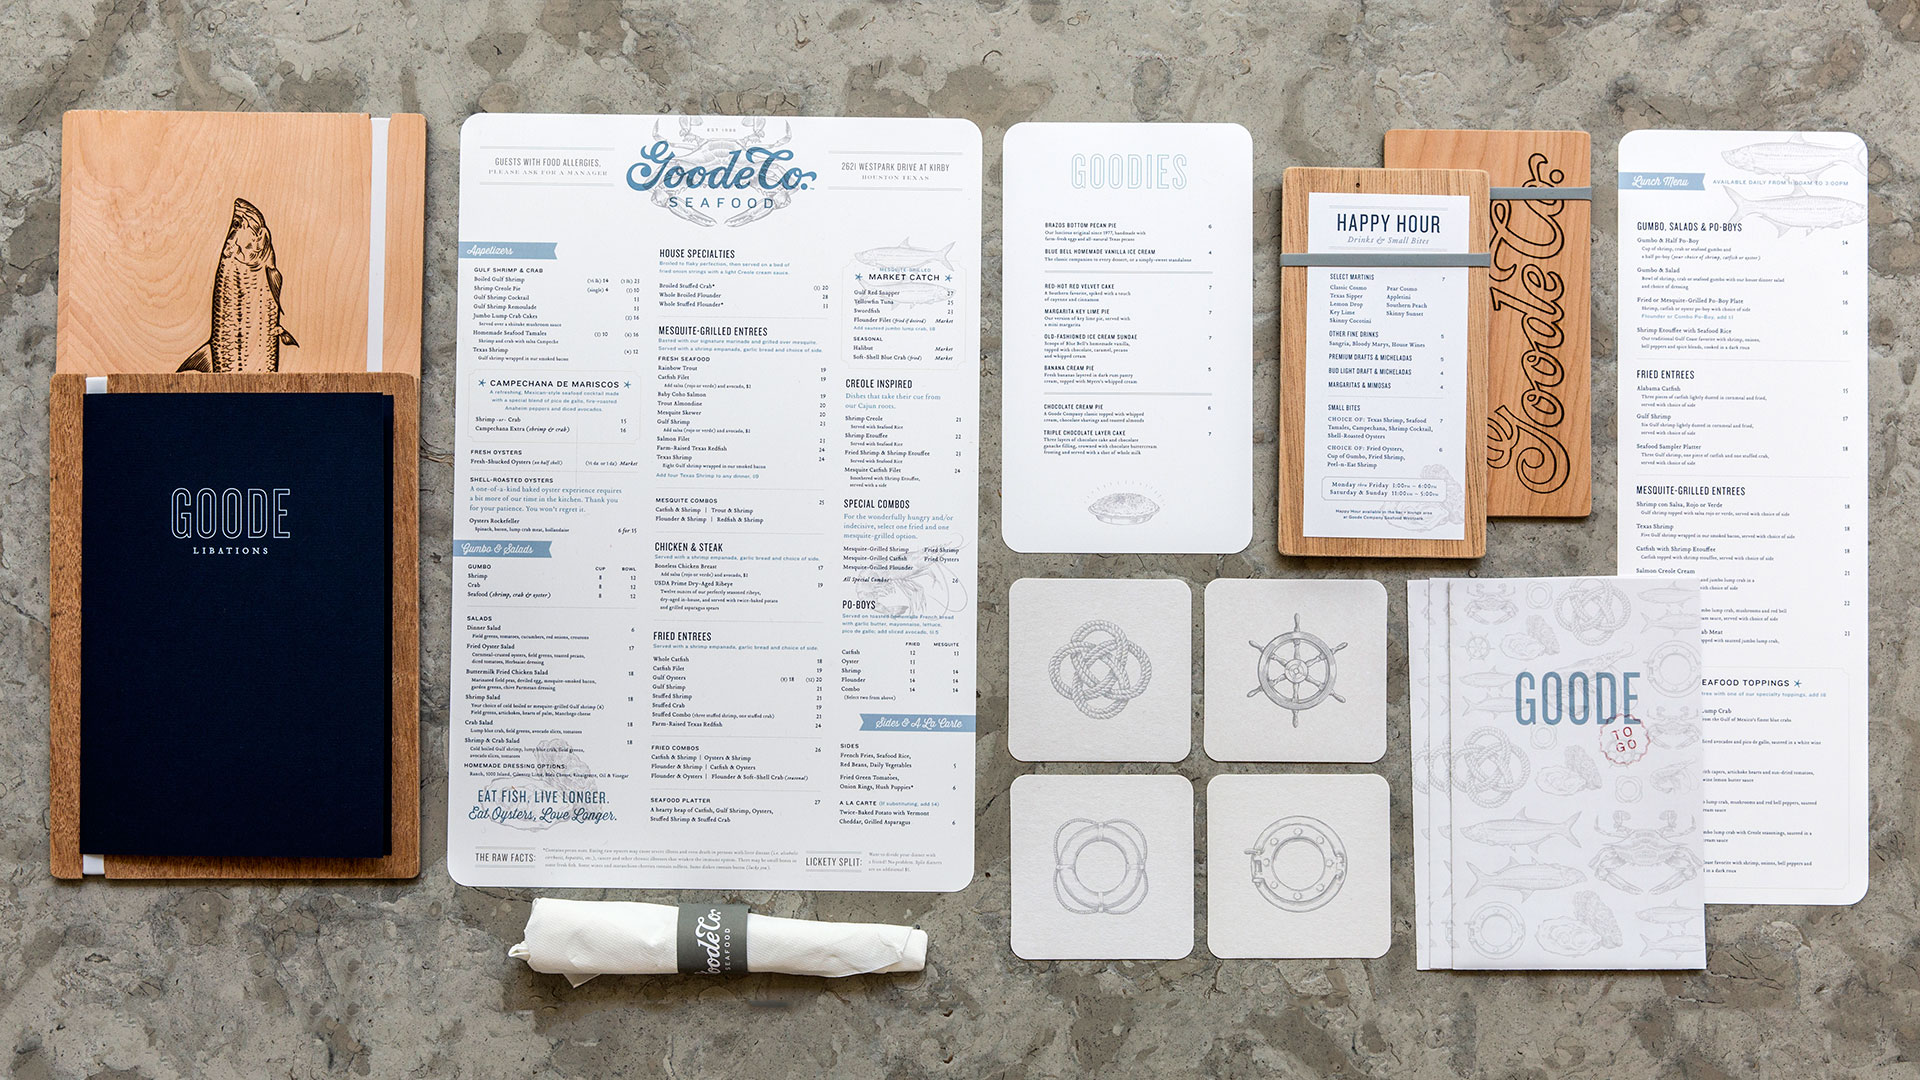 Goode Company Seafood Menu System - PaperSpecs